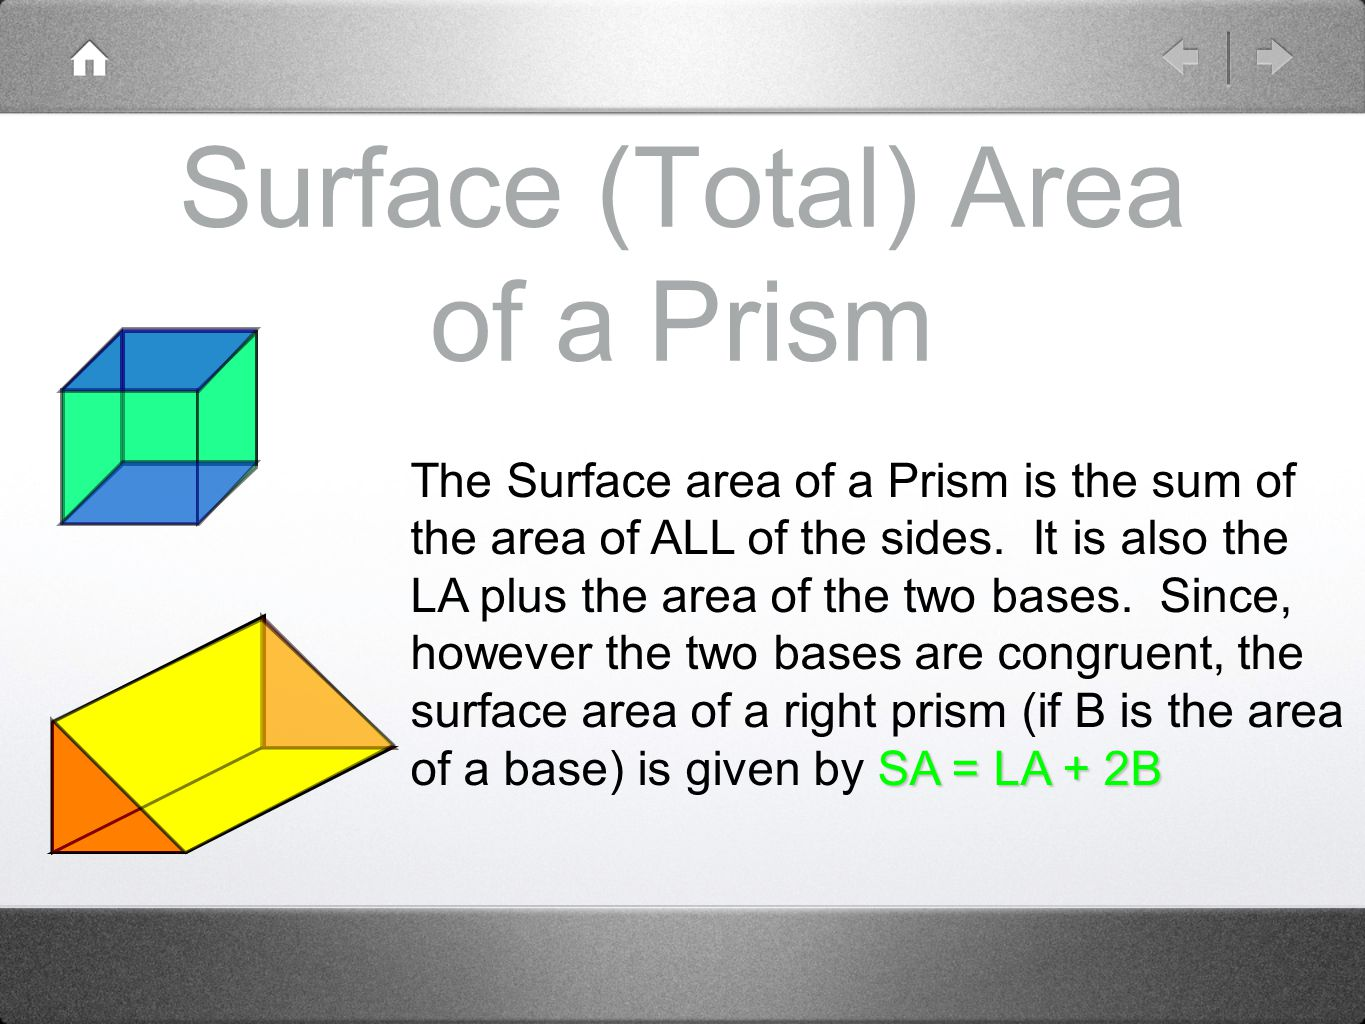 Surface (Total) Area of a Prism